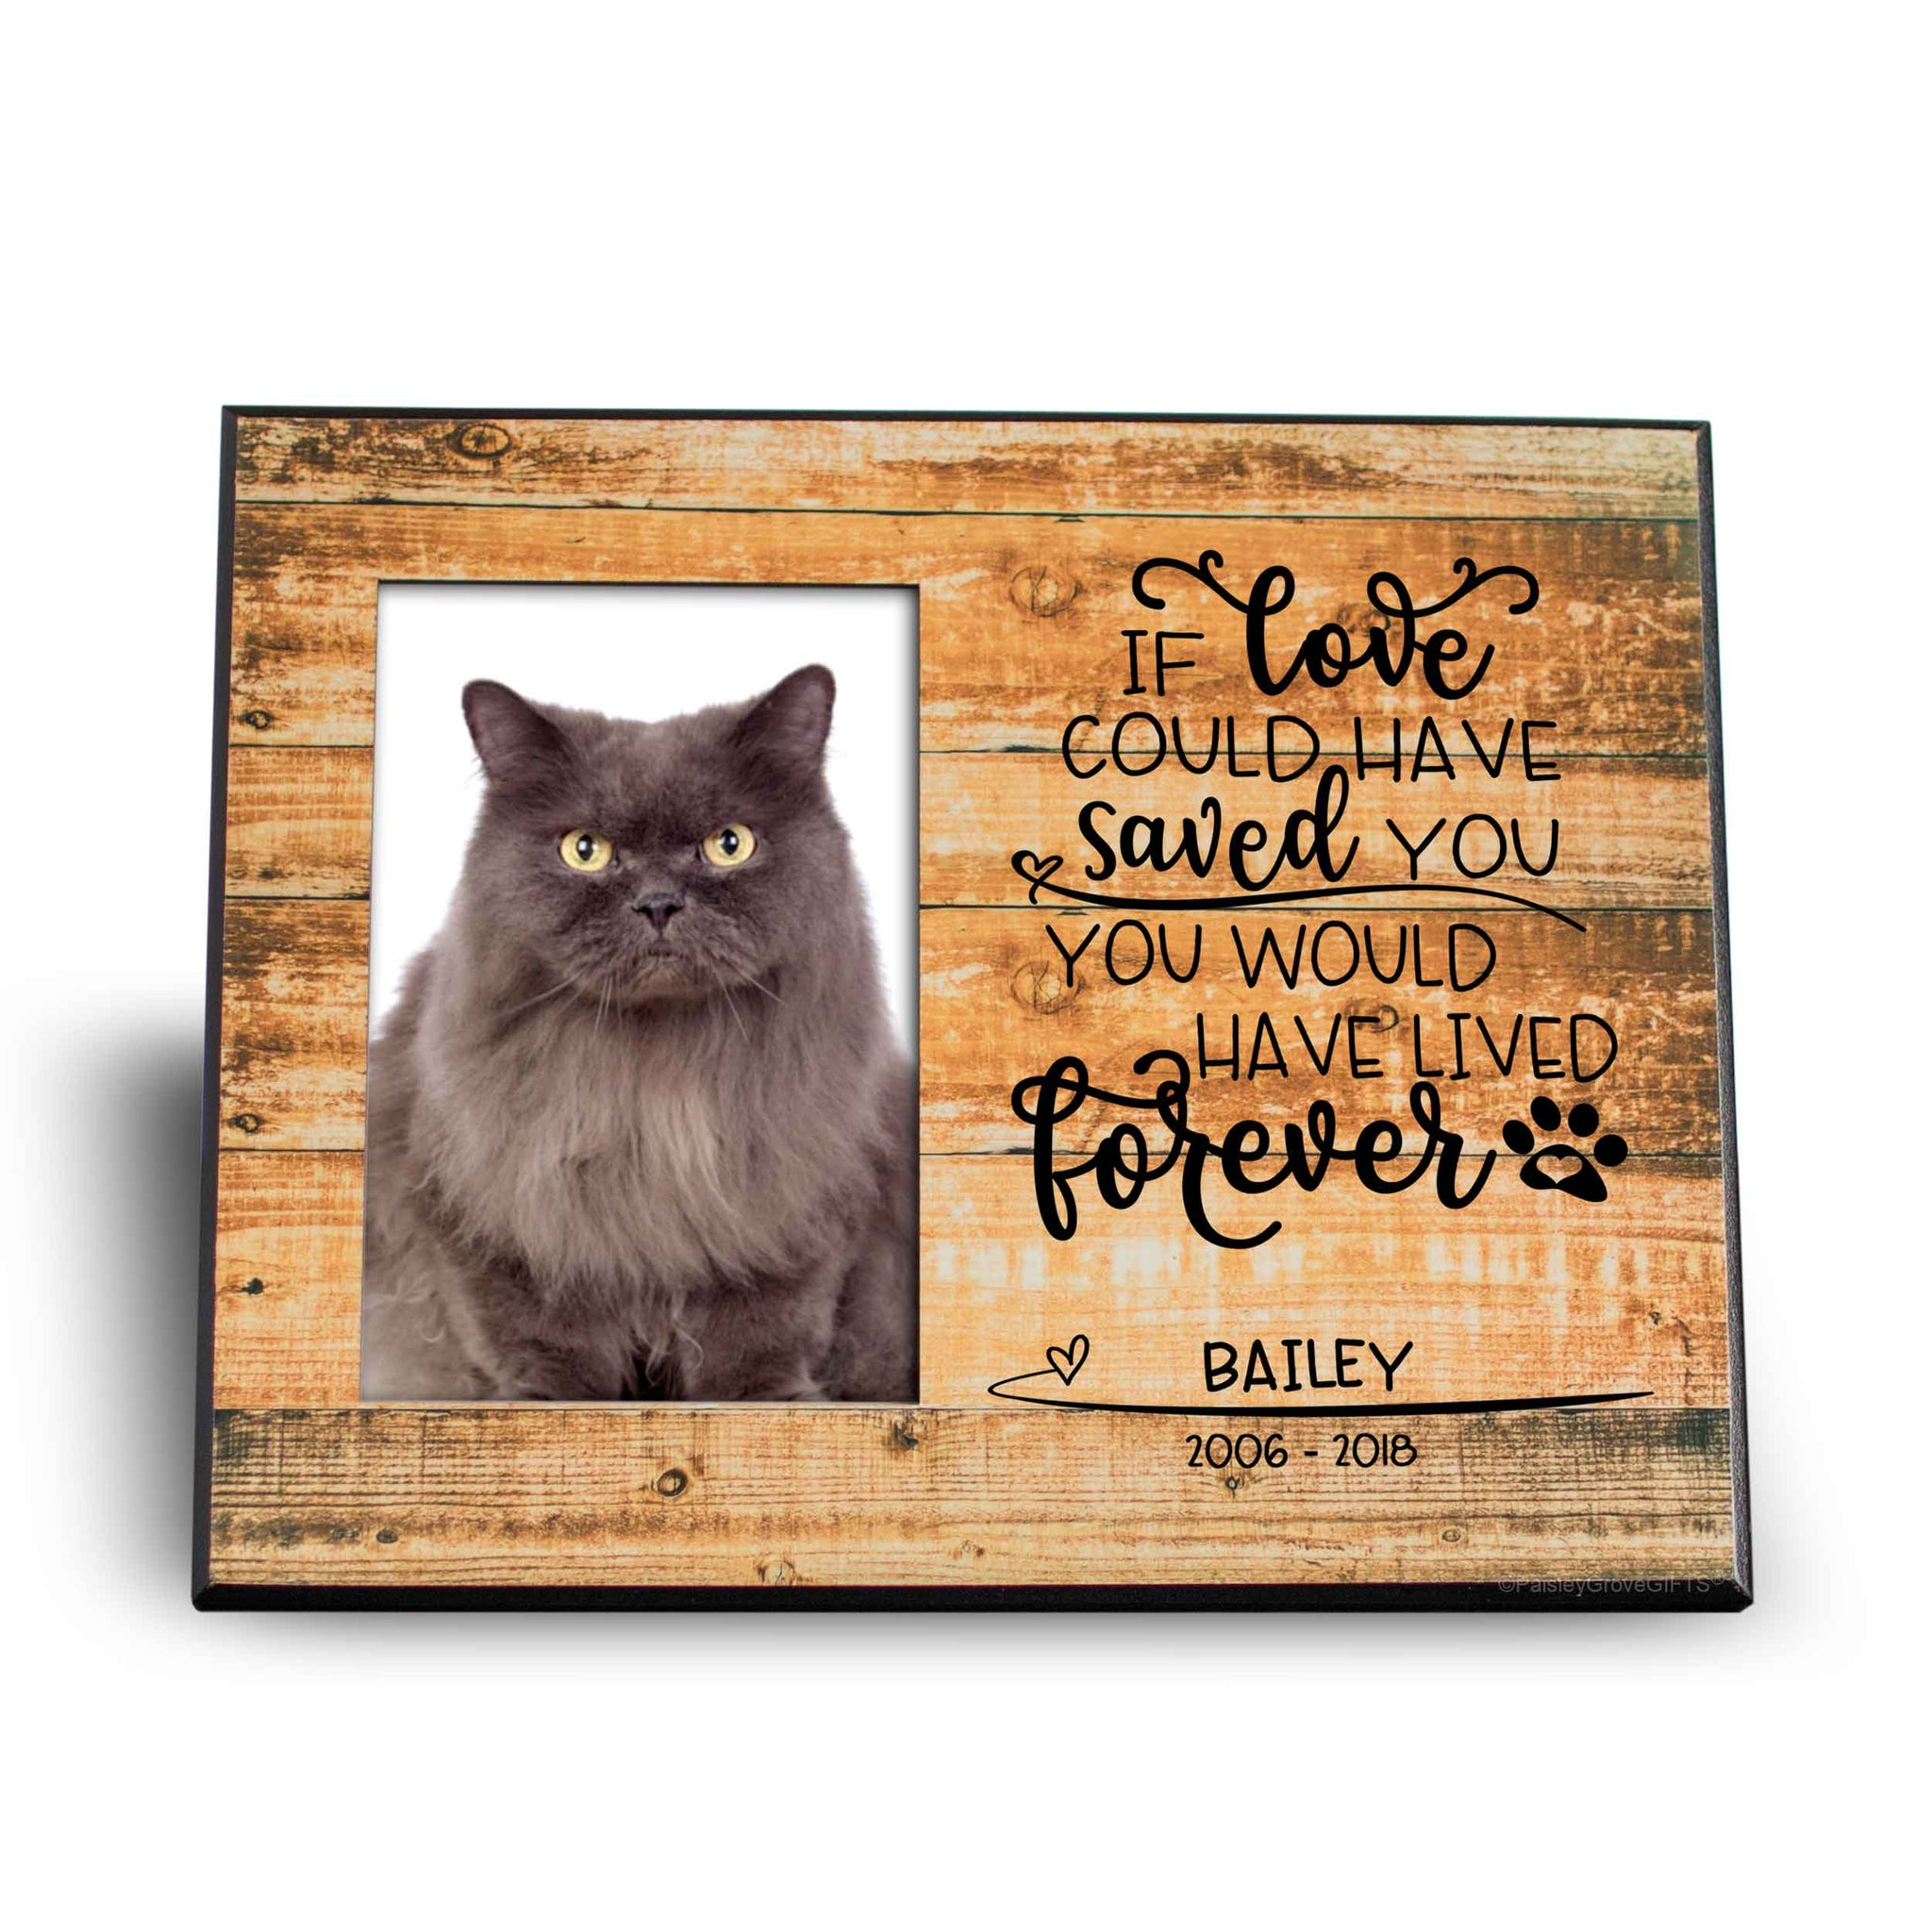 CopyrightPaisleyGroveGIFTS S280a1 Pet Loss Sympathy Gift for Cat Loss Frame with Photo Insert